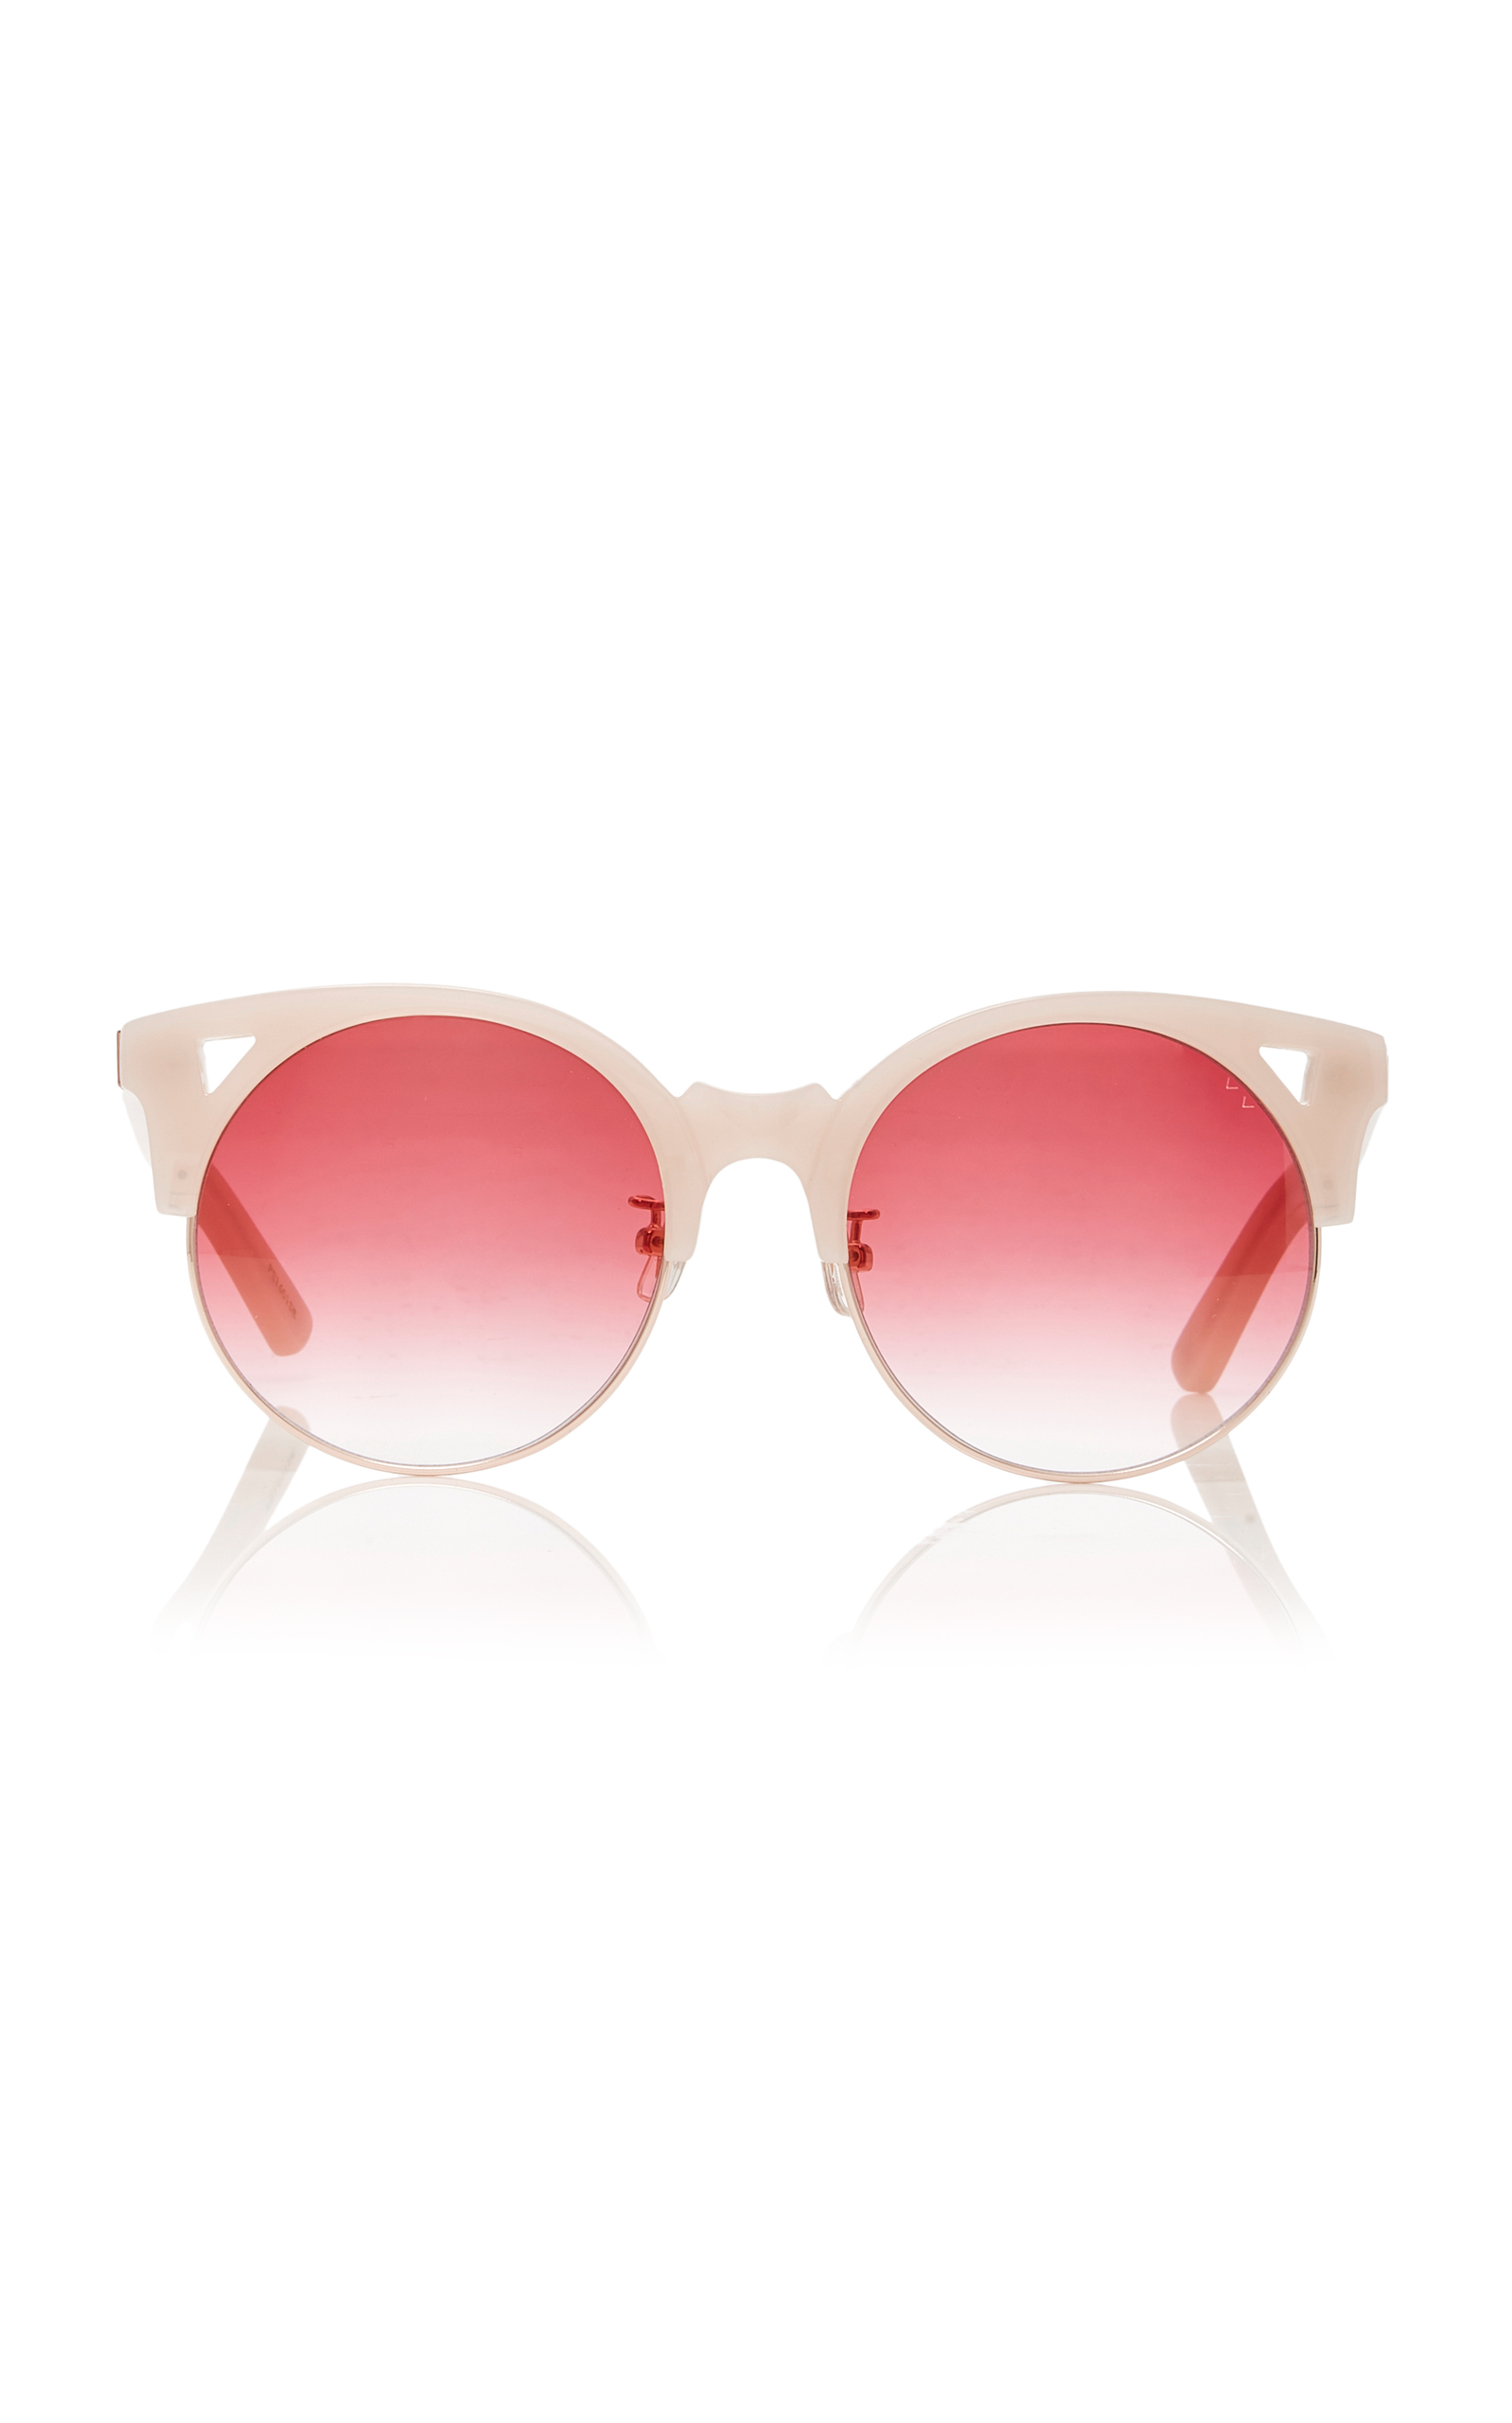 Tortoiseshell Acetate Cat-Eye Sunglasses Pared Eyewear c0TLFu7yo